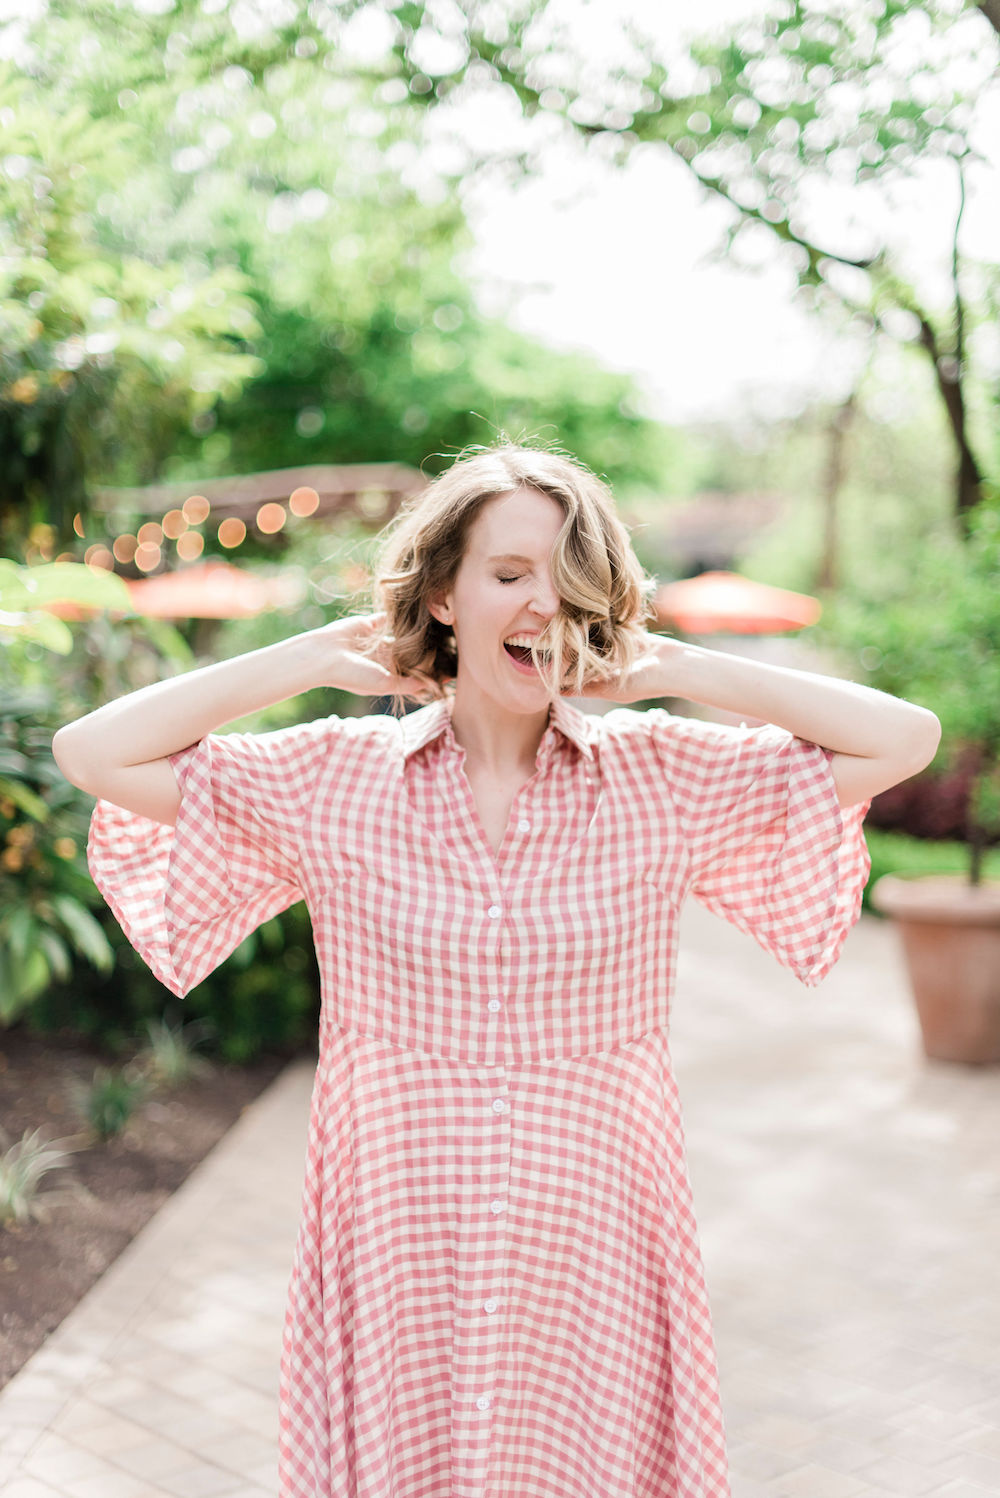 how to make money as a blogger, blogging income, how bloggers make money, how to make money as a blogger, how to start a blog, Texas blogger, Texas fashion blogger, Texas mom blogger, Austin fashion blogger, Austin blogger, Austin mom blogger, sister Jane dress, Swedish hasbeens, Austin photography, Austin photographer, Austin fashion photographer, Juliet Austin, Austin mural, blogging tips, five ways to make money as a blogger, how to earn a blogging income, how to make money as a blogger, how much money do bloggers make, Jesse Coulter